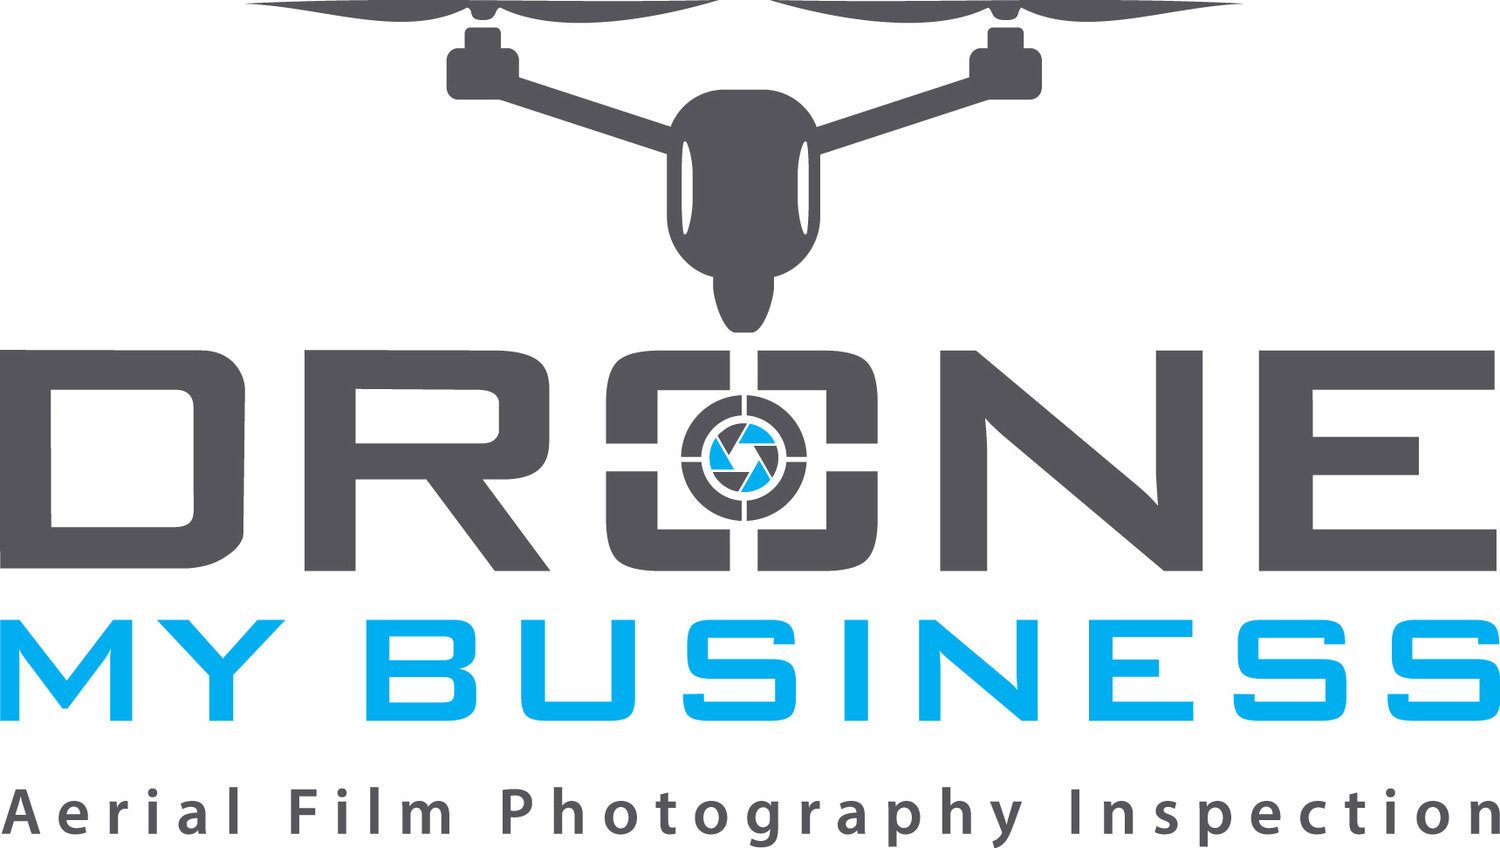 Drone My Business Ltd stunning aerial 4K filming photography, promo videos building & industrial survey inspection work